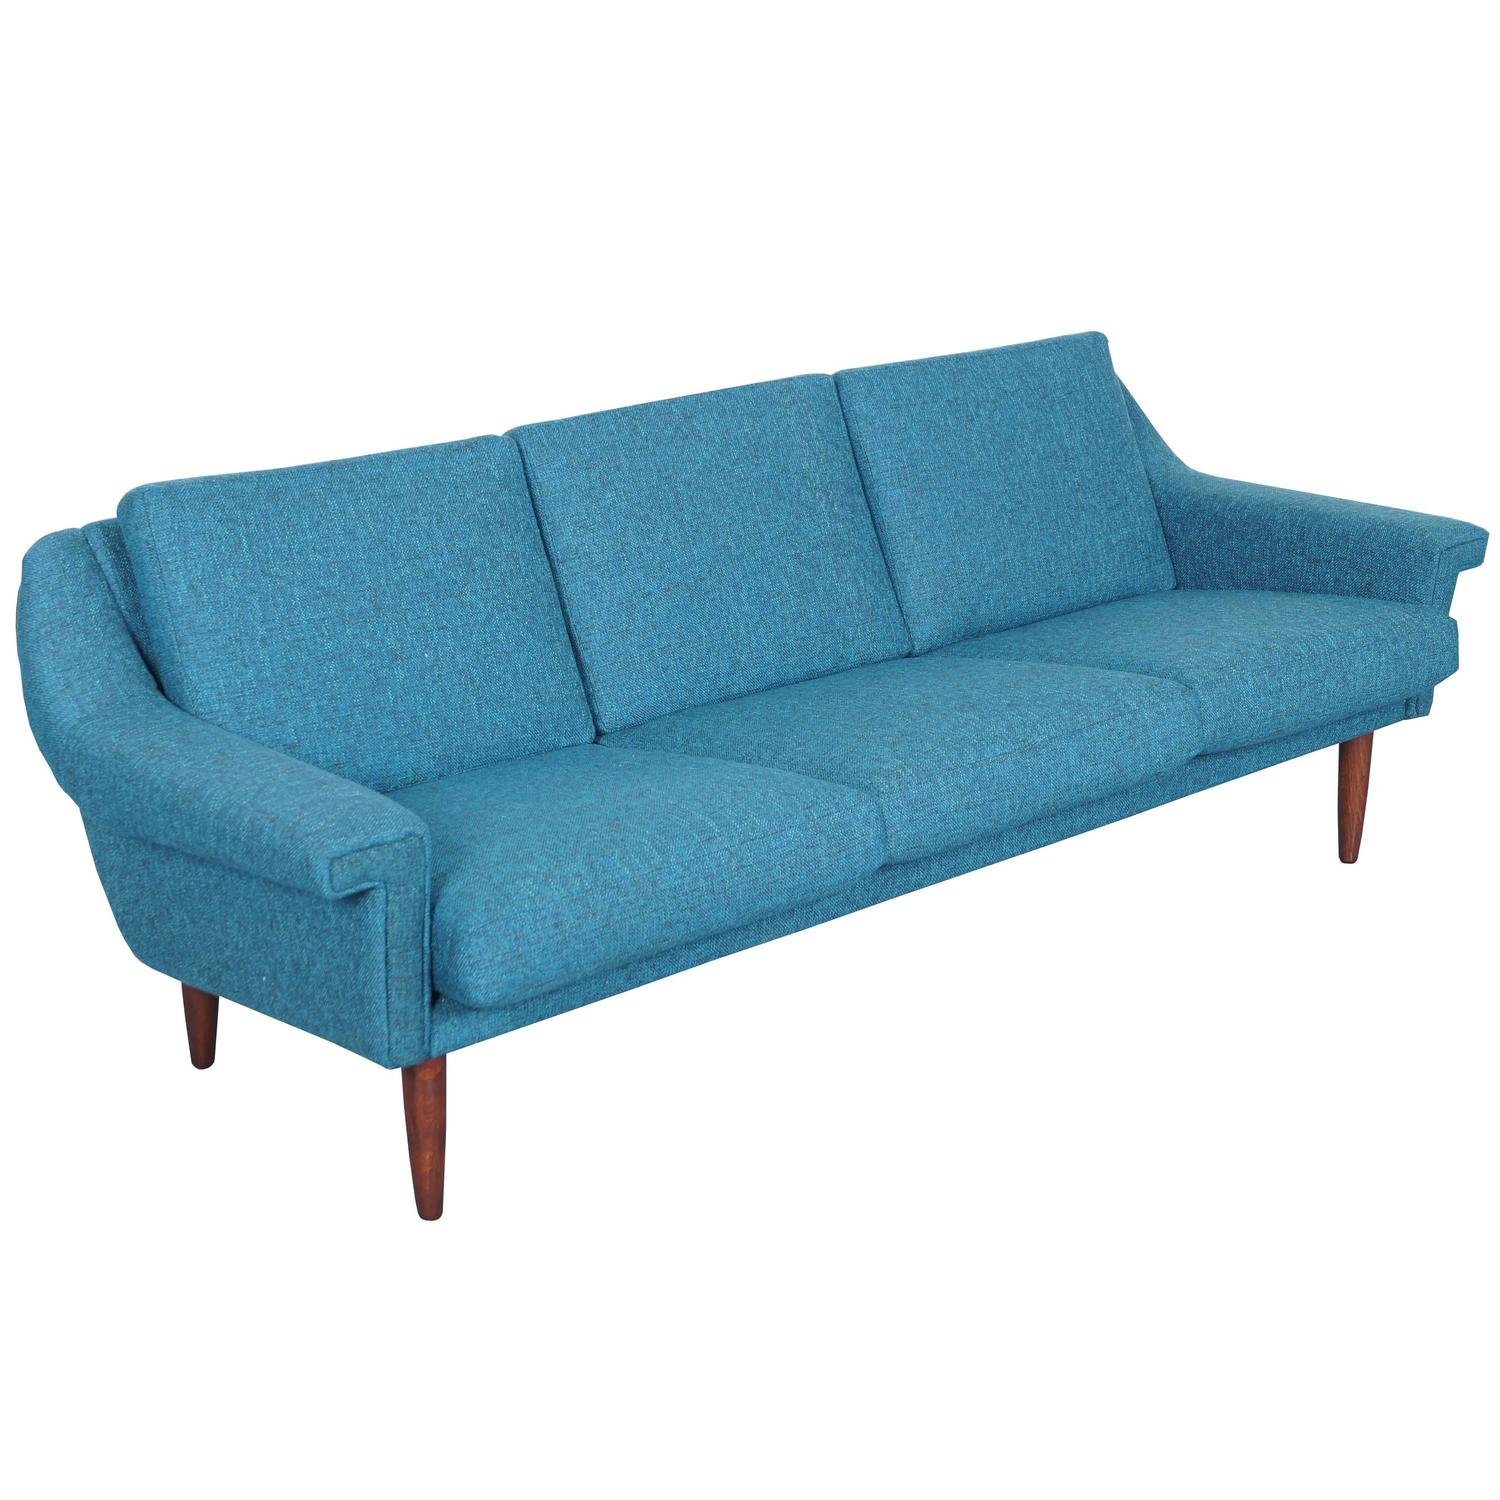 Danish modern sofa for sale at 1stdibs for Danish modern reproduction